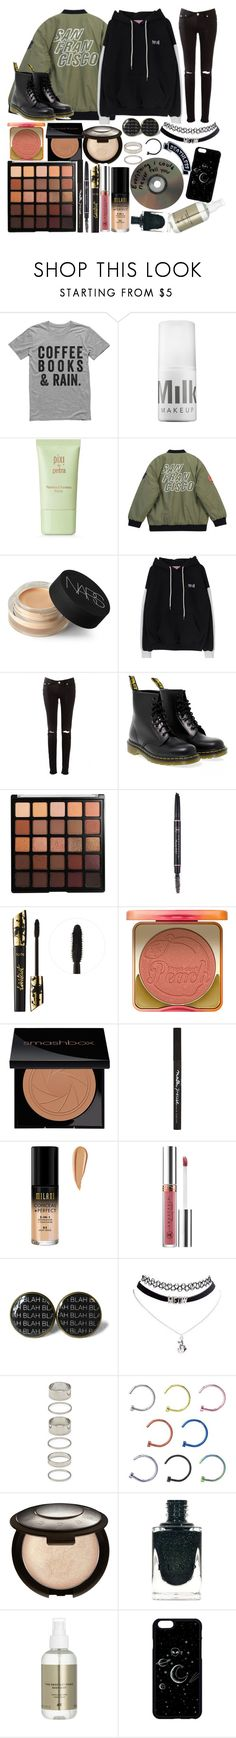 """""""One jacket two looks pt. 2// """"I've done some thinking of my own, and when I come home, I wanna be done, don't wanna be famous no more"""""""" by thelyricsmatter ❤ liked on Polyvore featuring MILK MAKEUP, Pixi, Chicnova Fashion, NARS Cosmetics, Dr. Martens, Morphe, Anastasia Beverly Hills, tarte, Too Faced Cosmetics and Smashbox"""